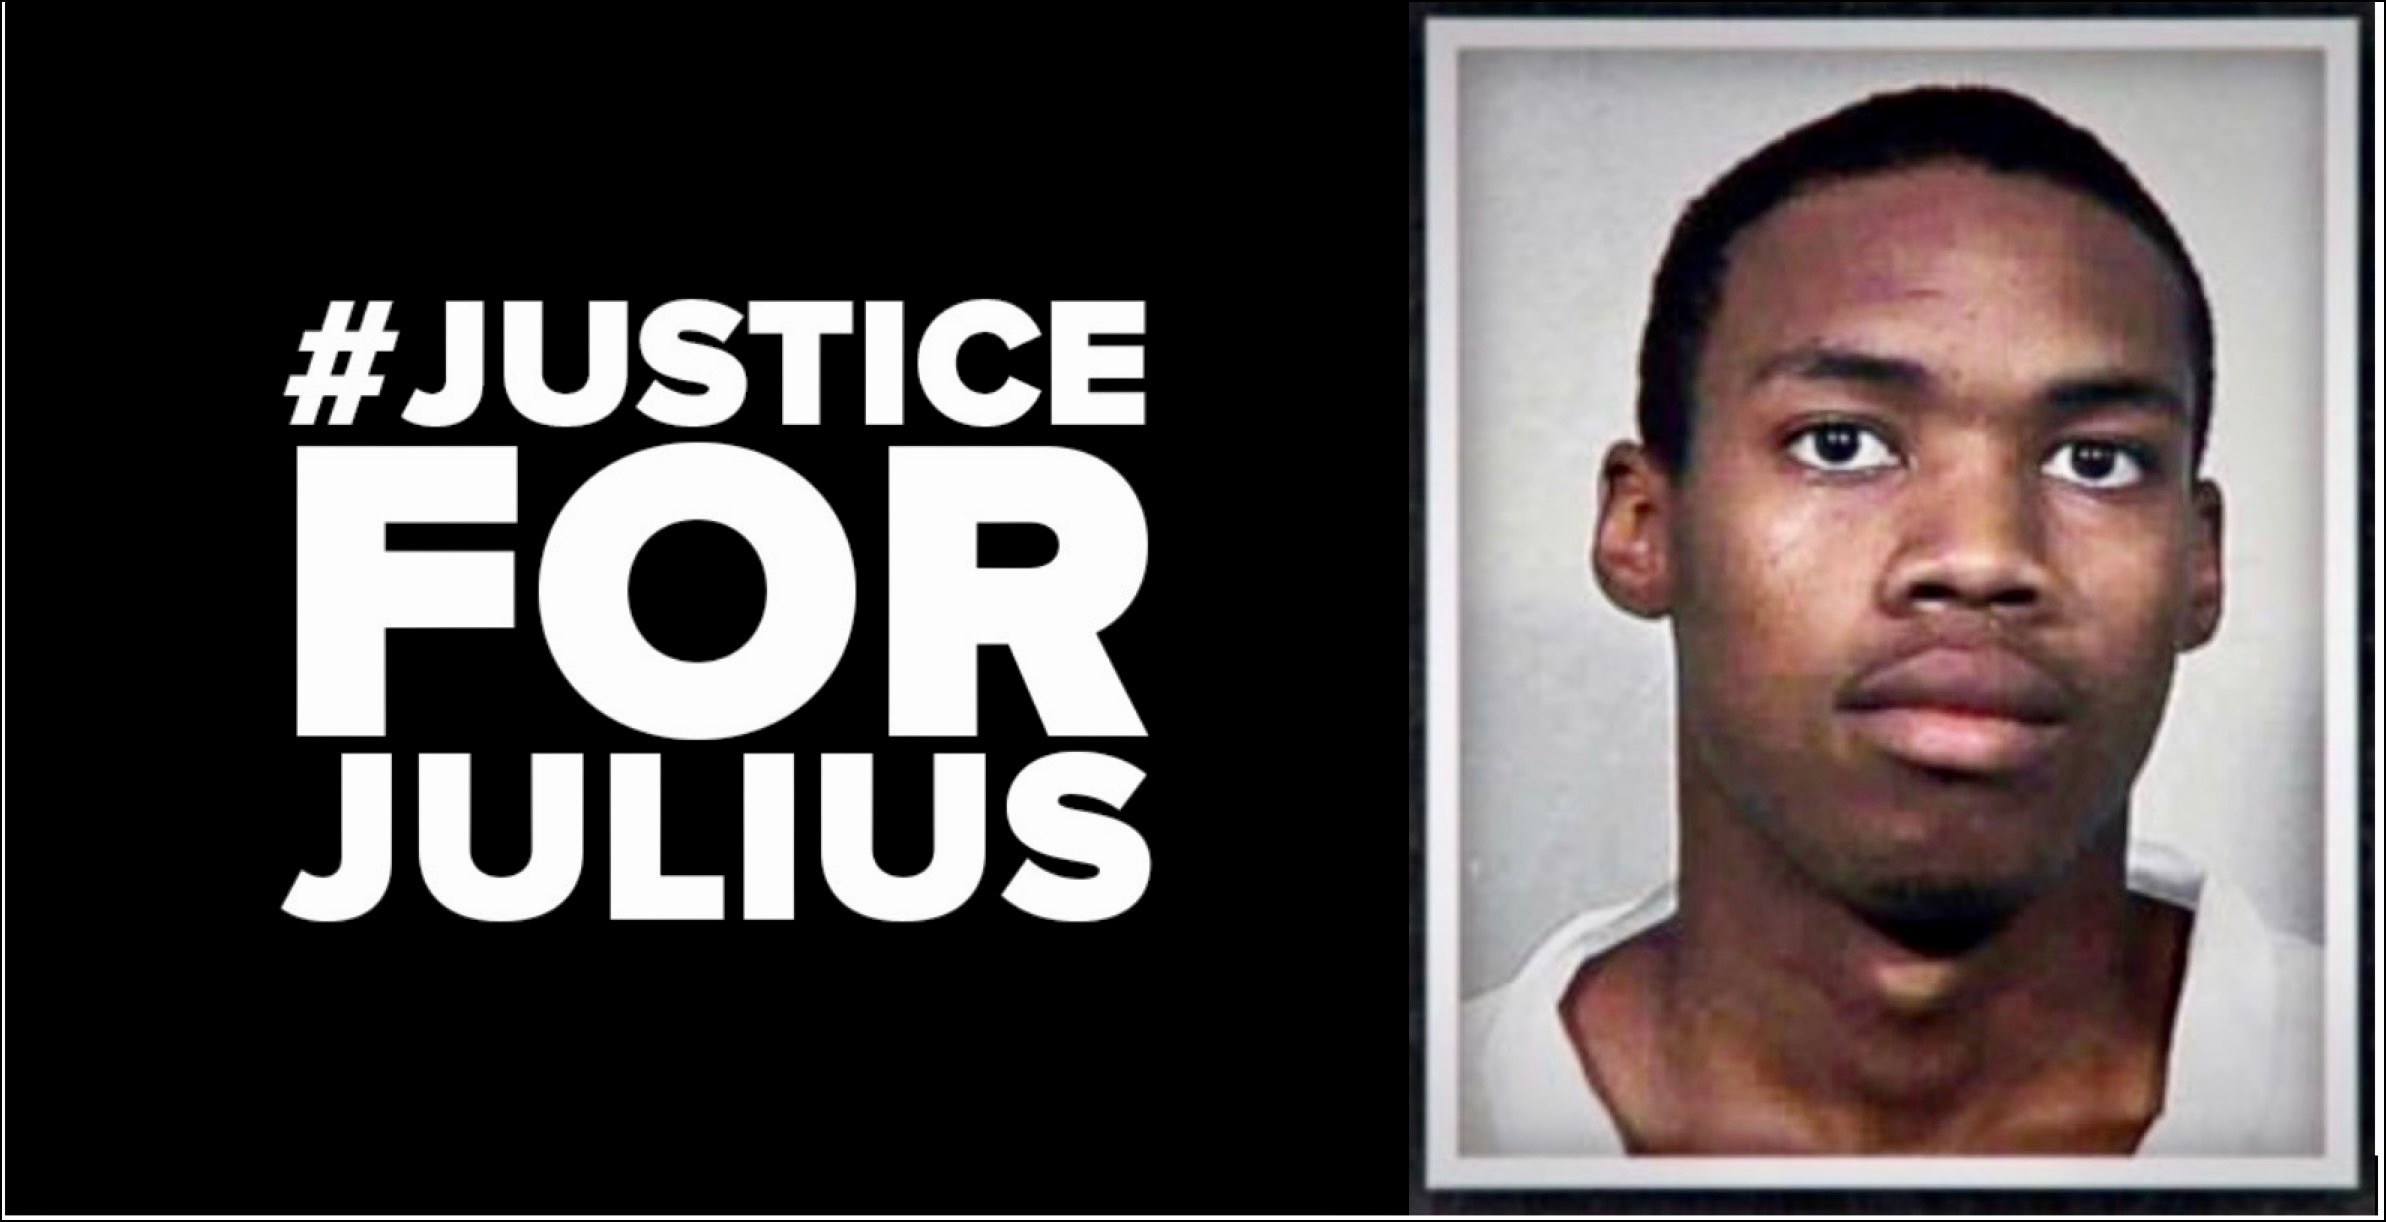 Justice for Julius with photo 2Aug2020 2